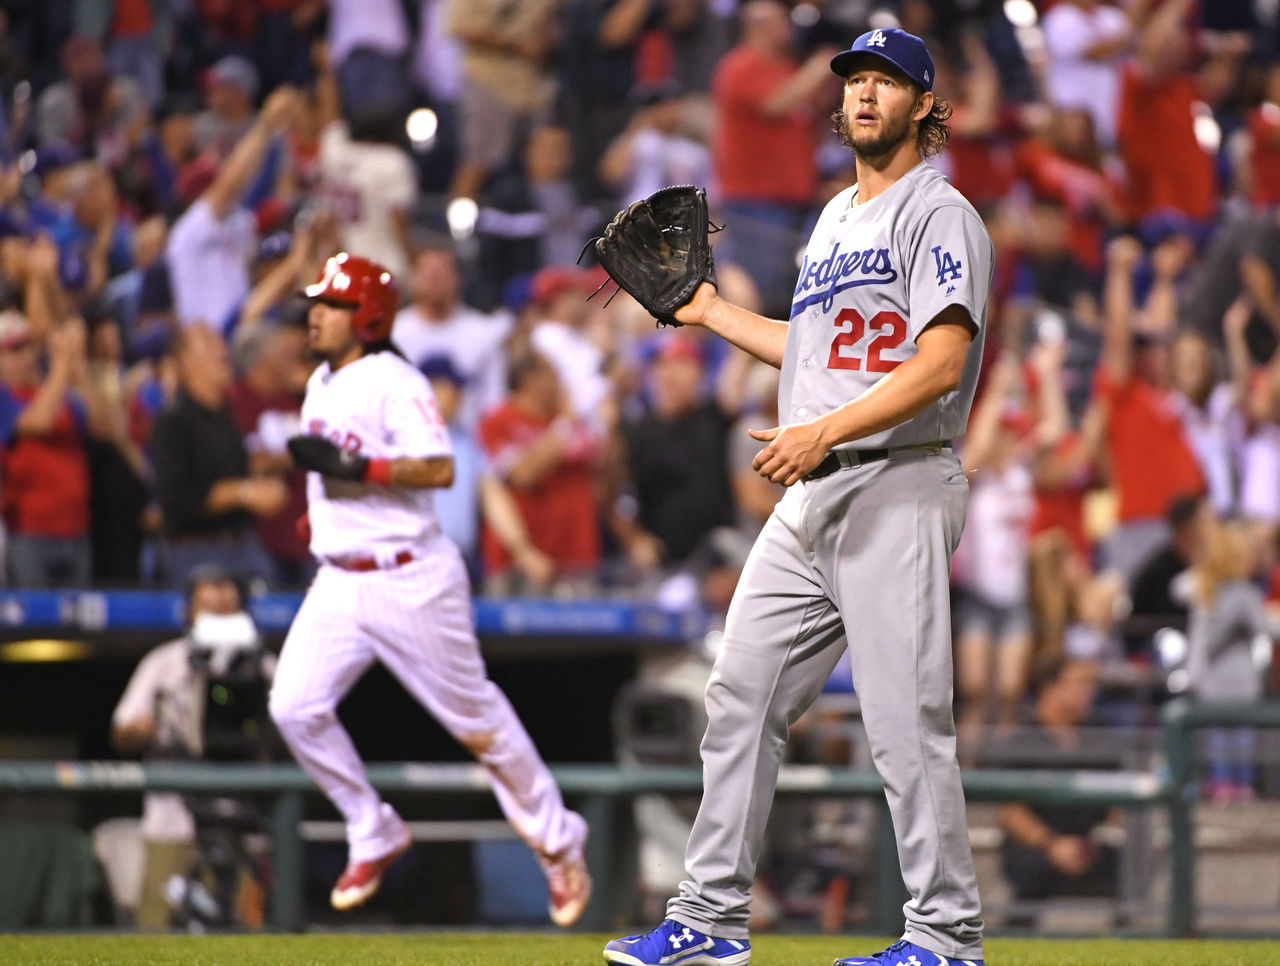 Cropped 2017 09 19t011239z 1865921657 nocid rtrmadp 3 mlb los angeles dodgers at philadelphia phillies